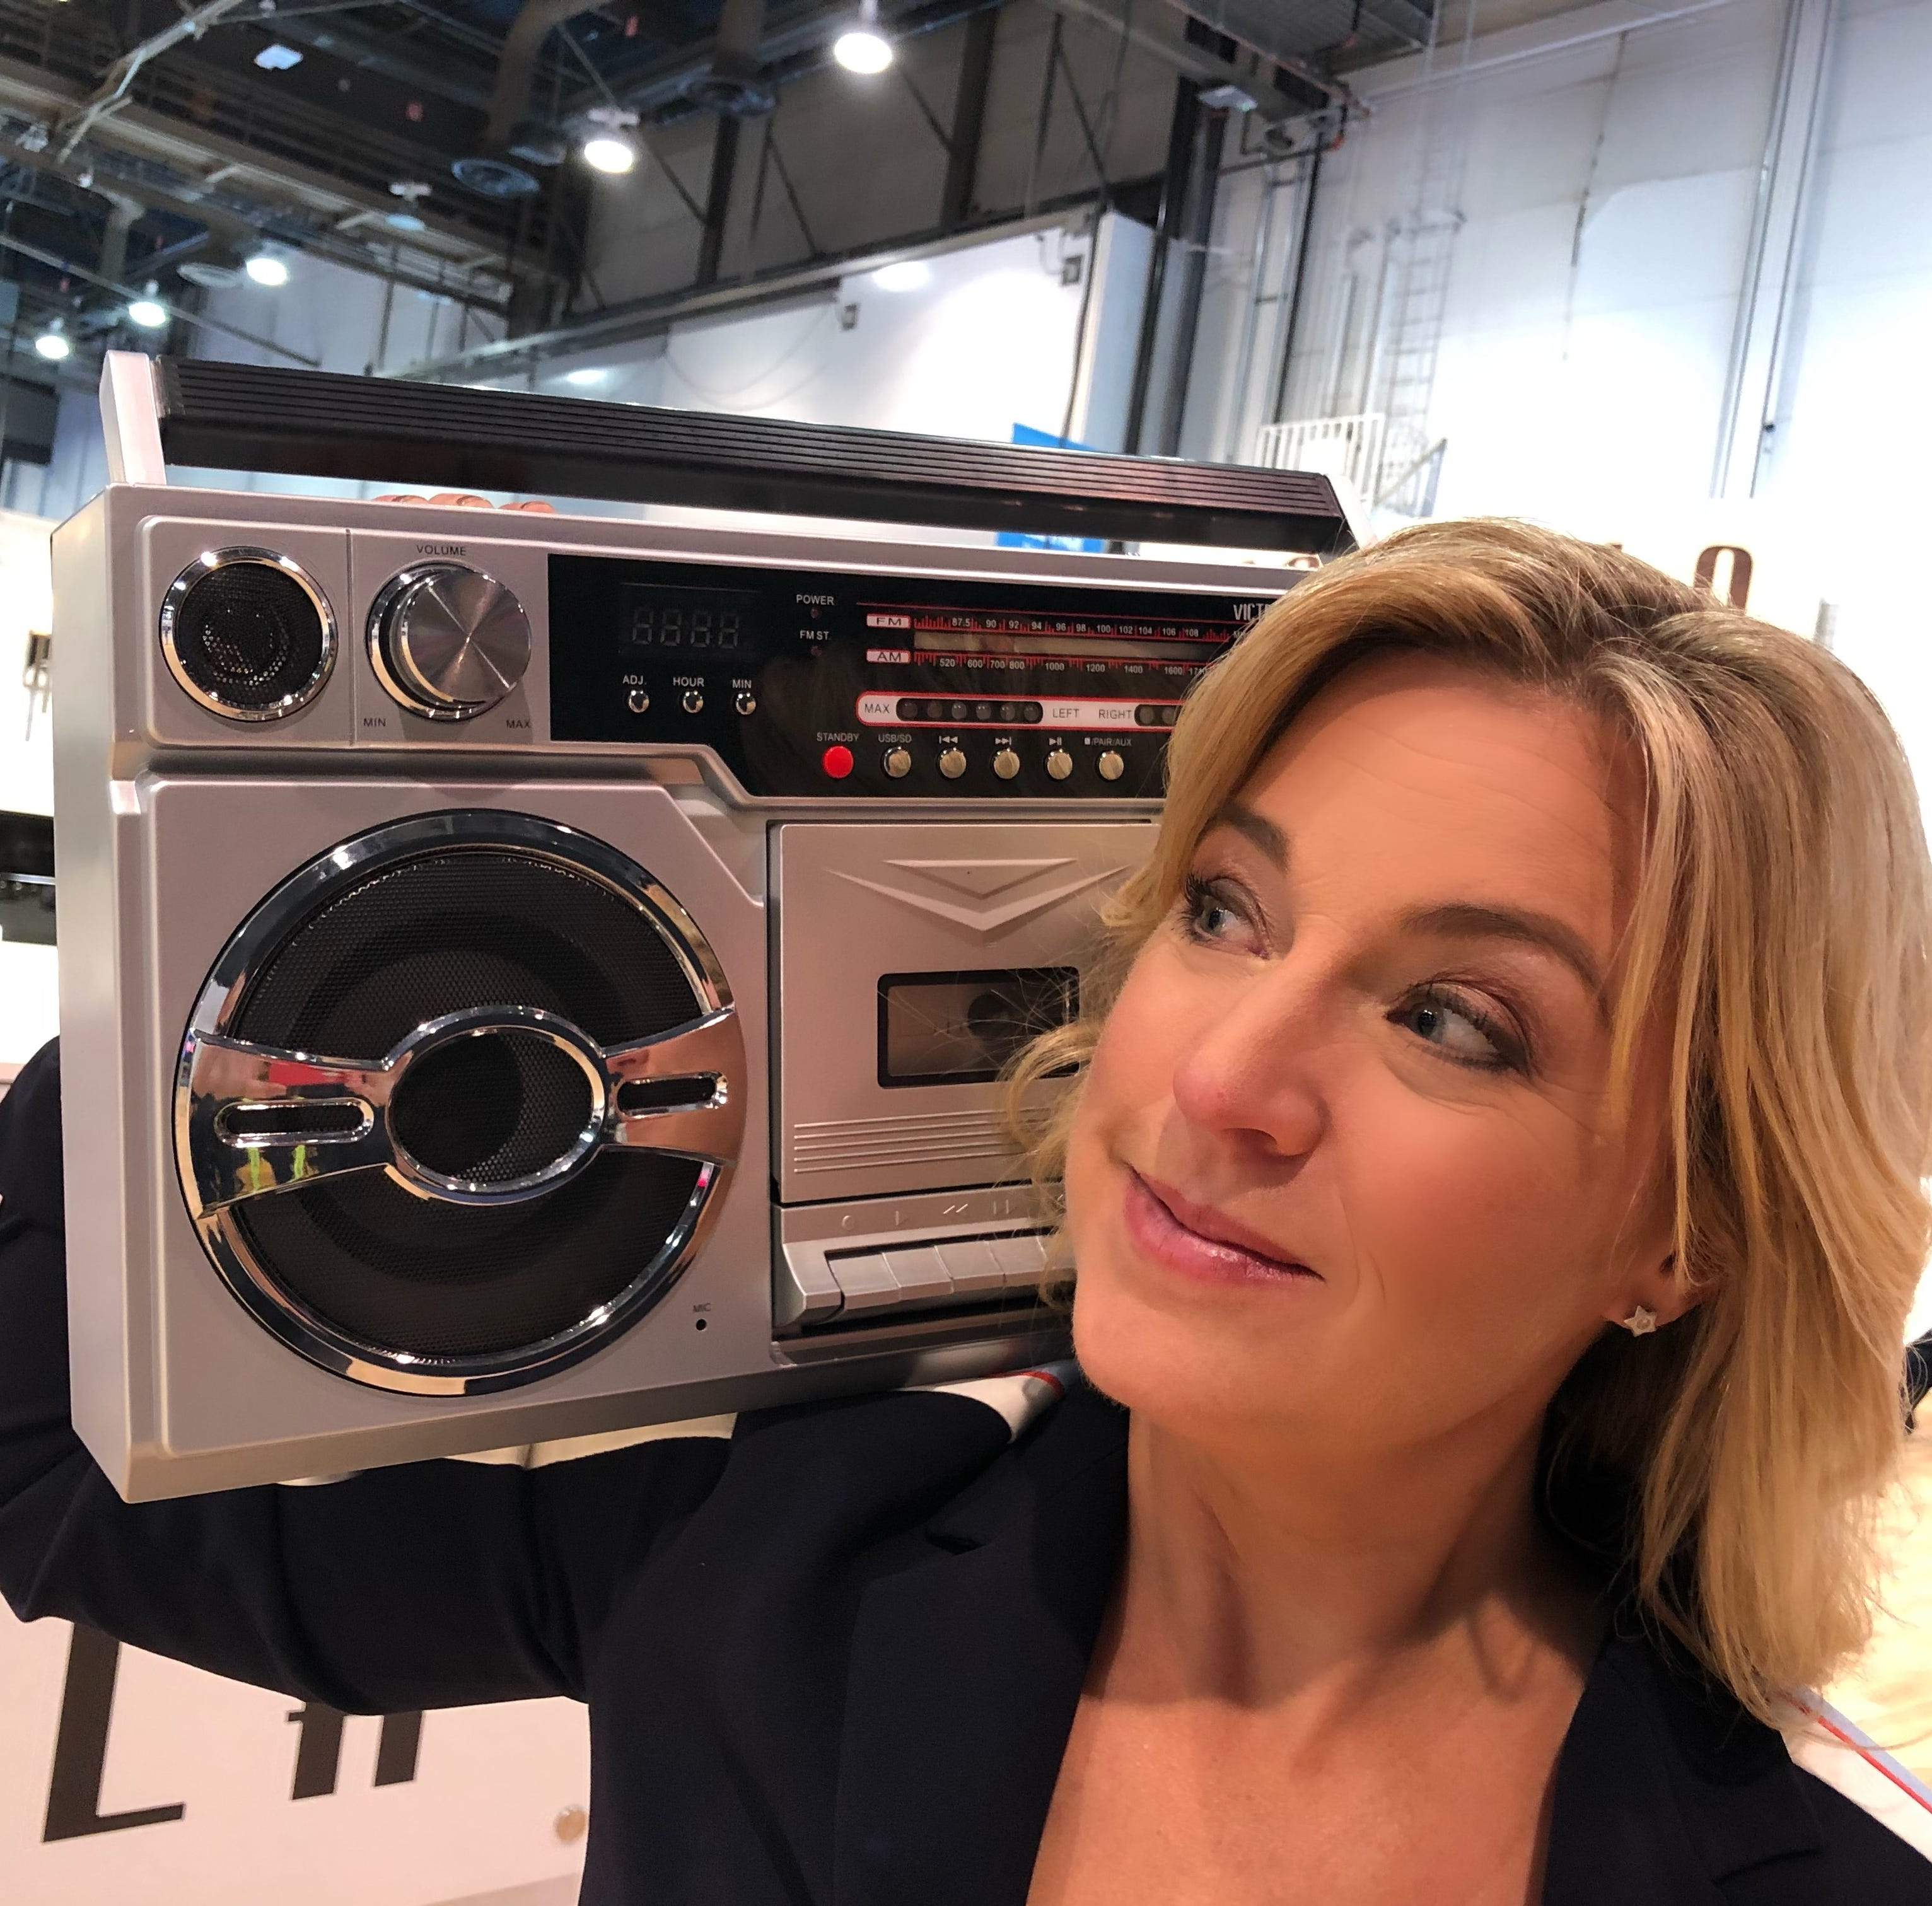 Boom boxes, mixtapes and instant cameras as hot new tech? Yes, it's actually 2019